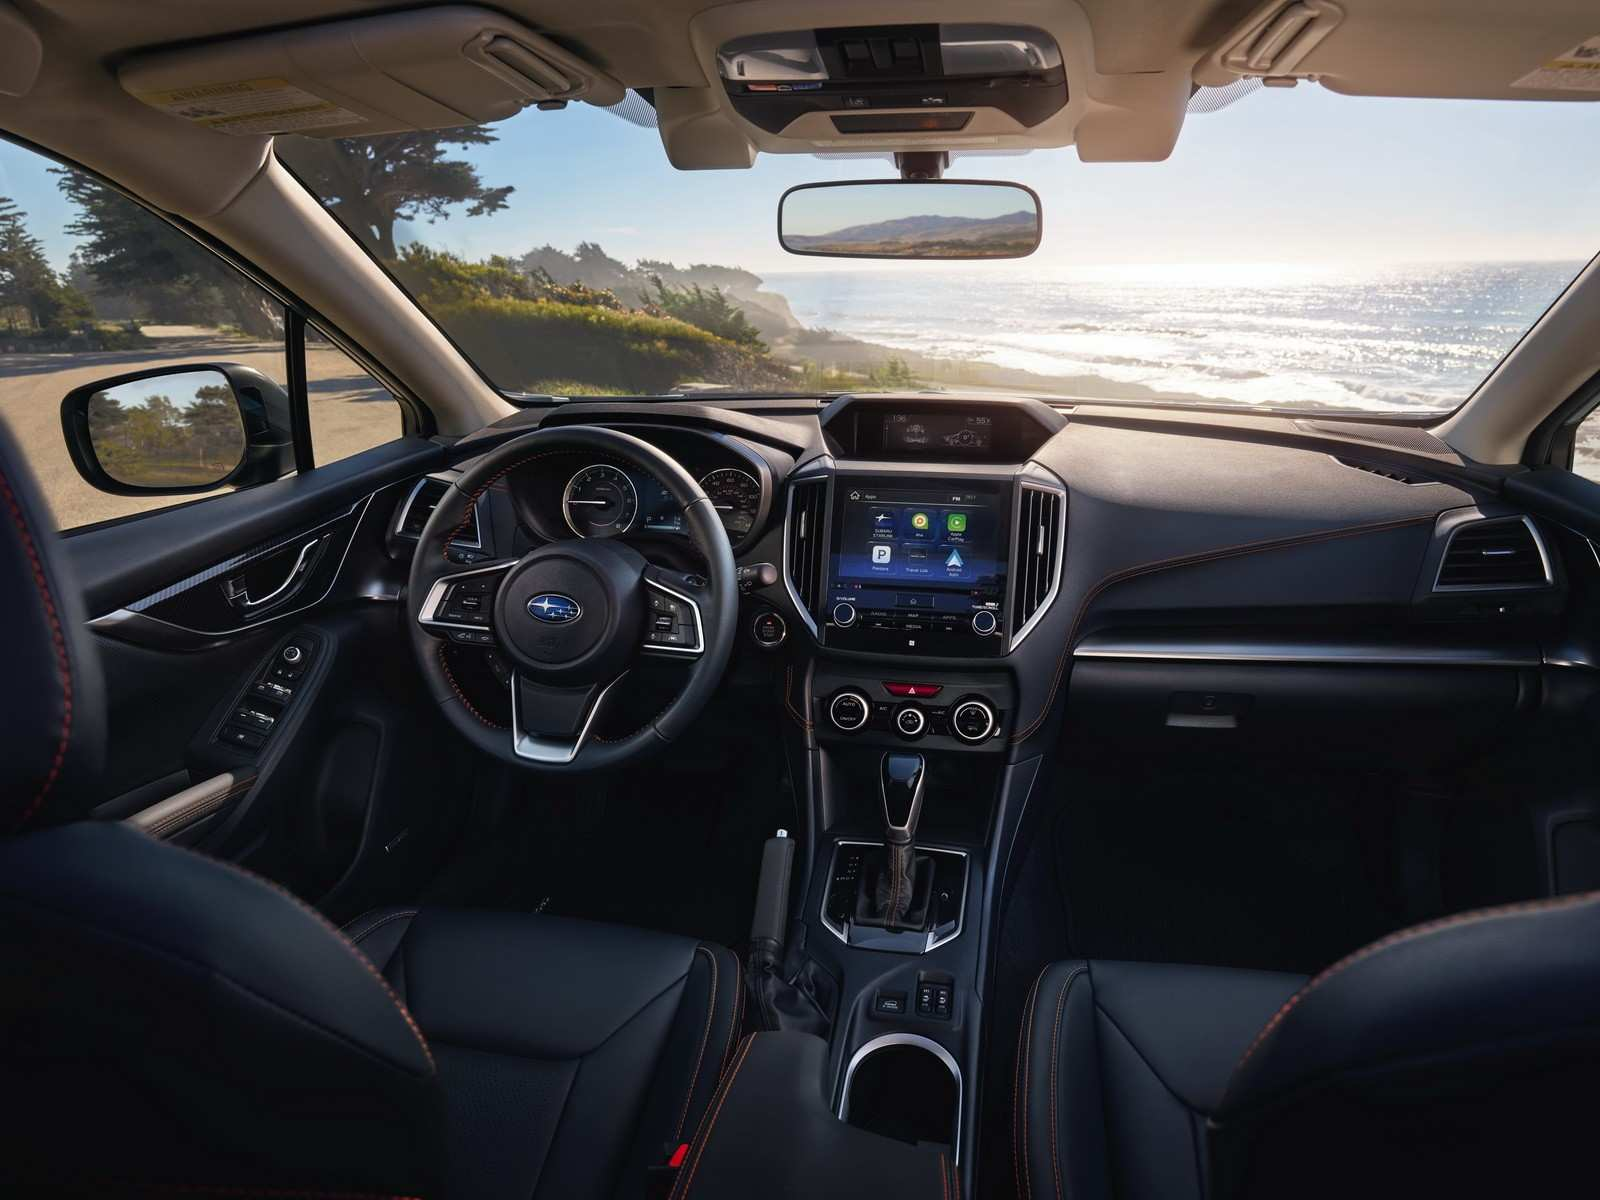 55 Best Review 2019 Subaru Phev Interior for 2019 Subaru Phev